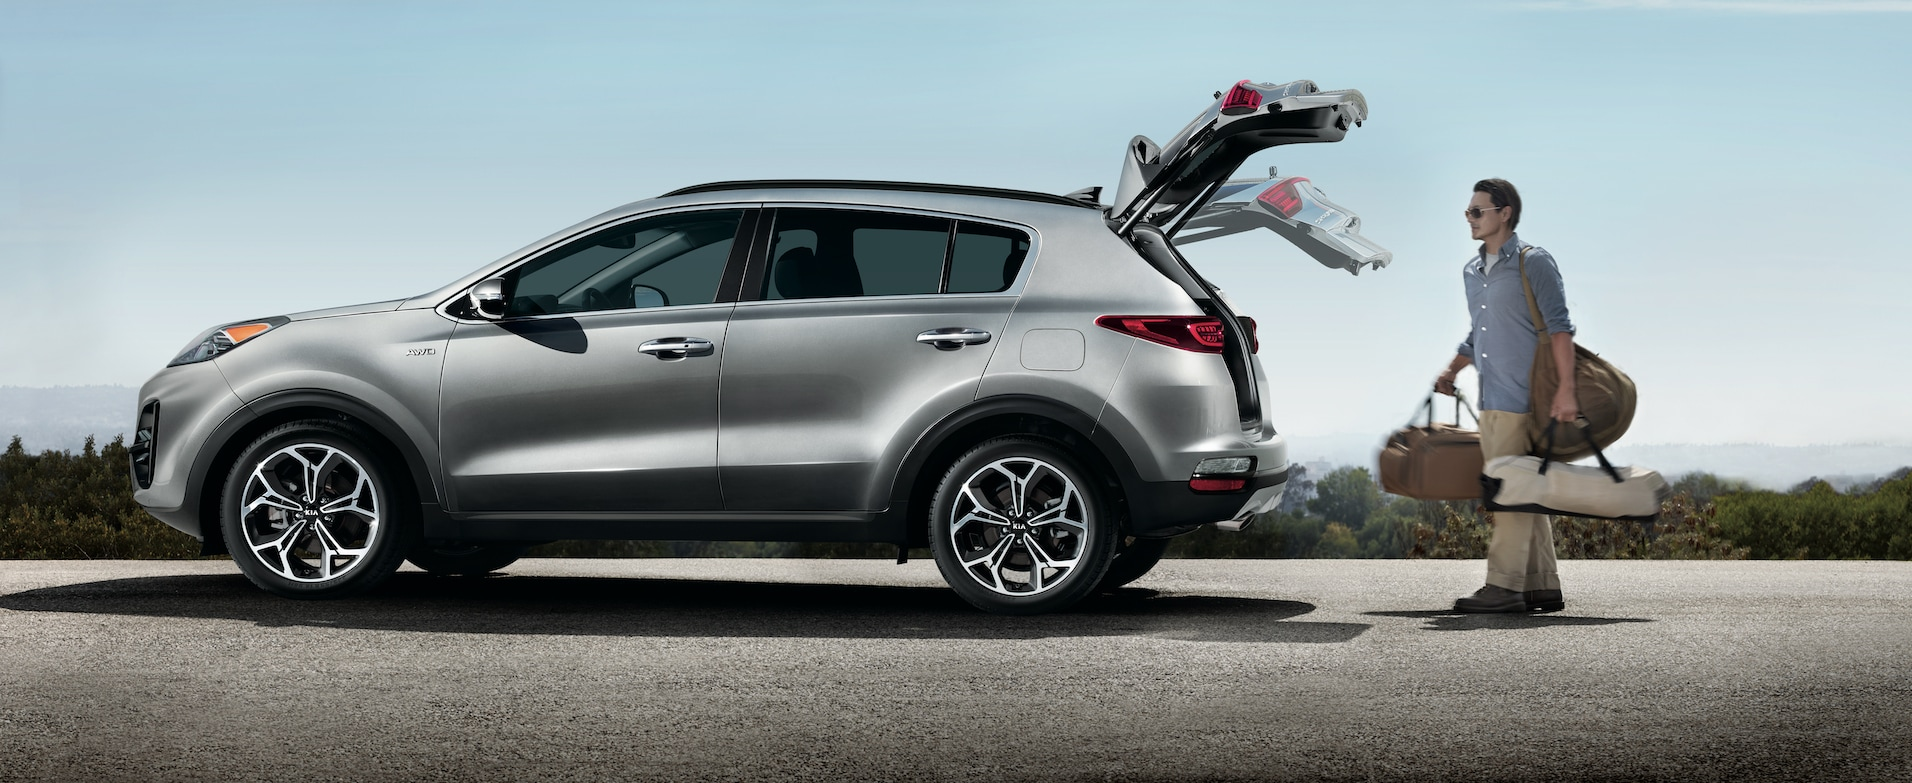 Kia of New Bern is a Car Dealership in New Bern near River Bend, NC | Grey 2020 Kia Sportage being unloaded